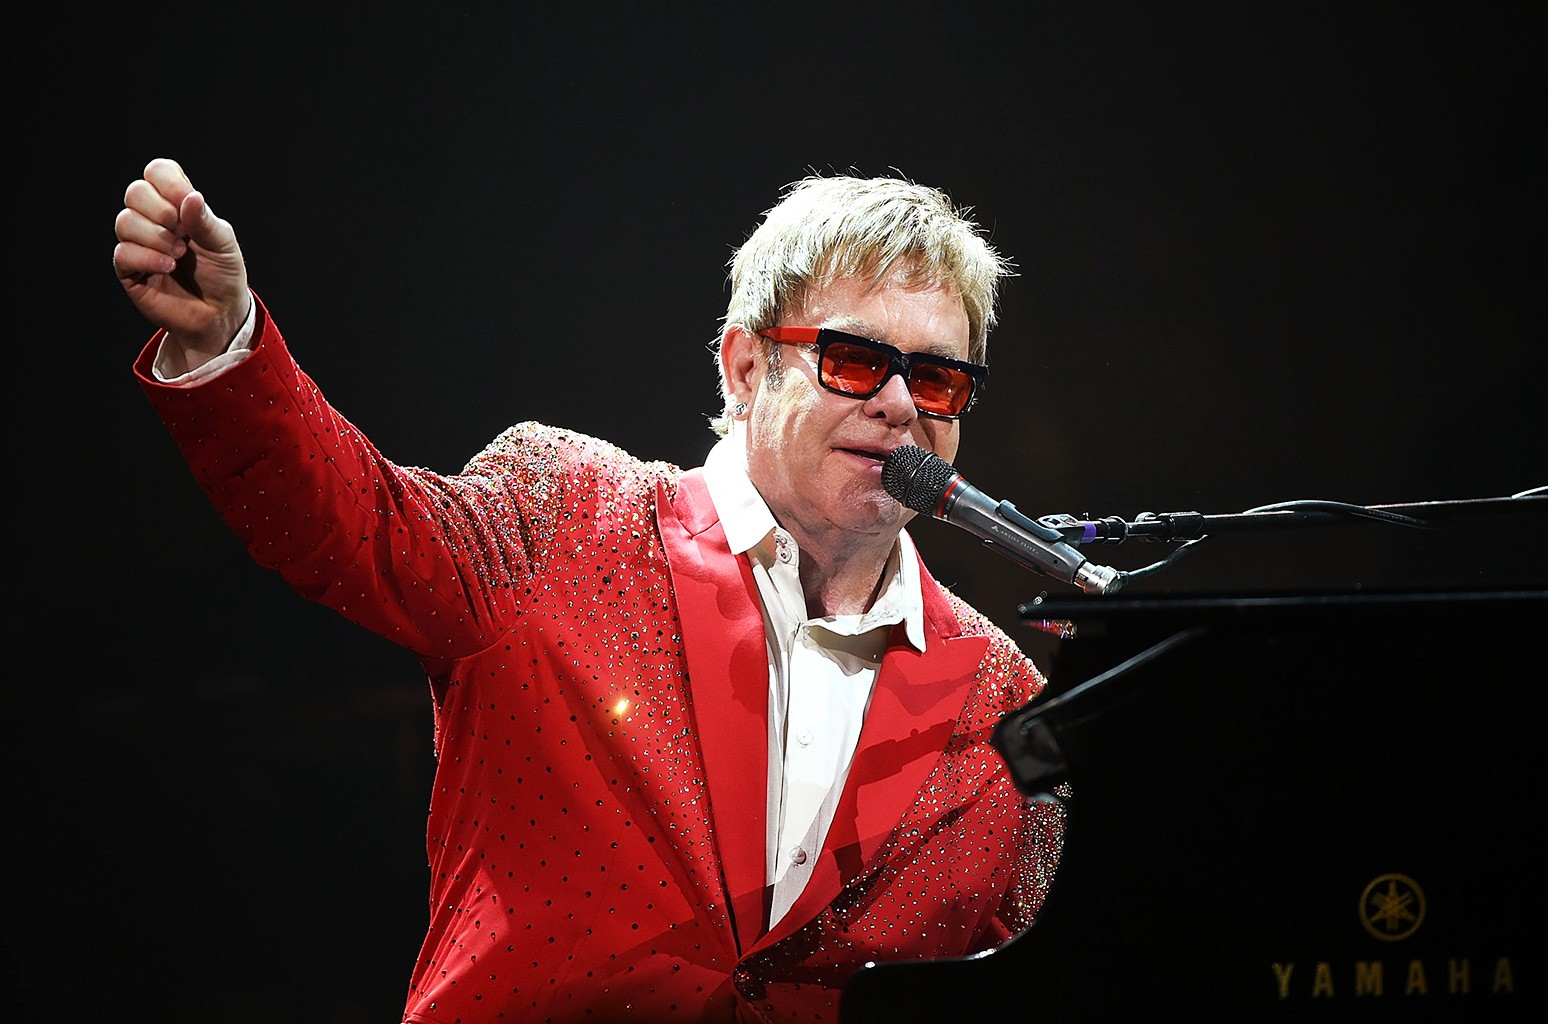 Elton John performs on Dick Clark's New Year's Rockin' Eve with Ryan Seacrest 2015 on Dec. 31, 2014 in New York City.